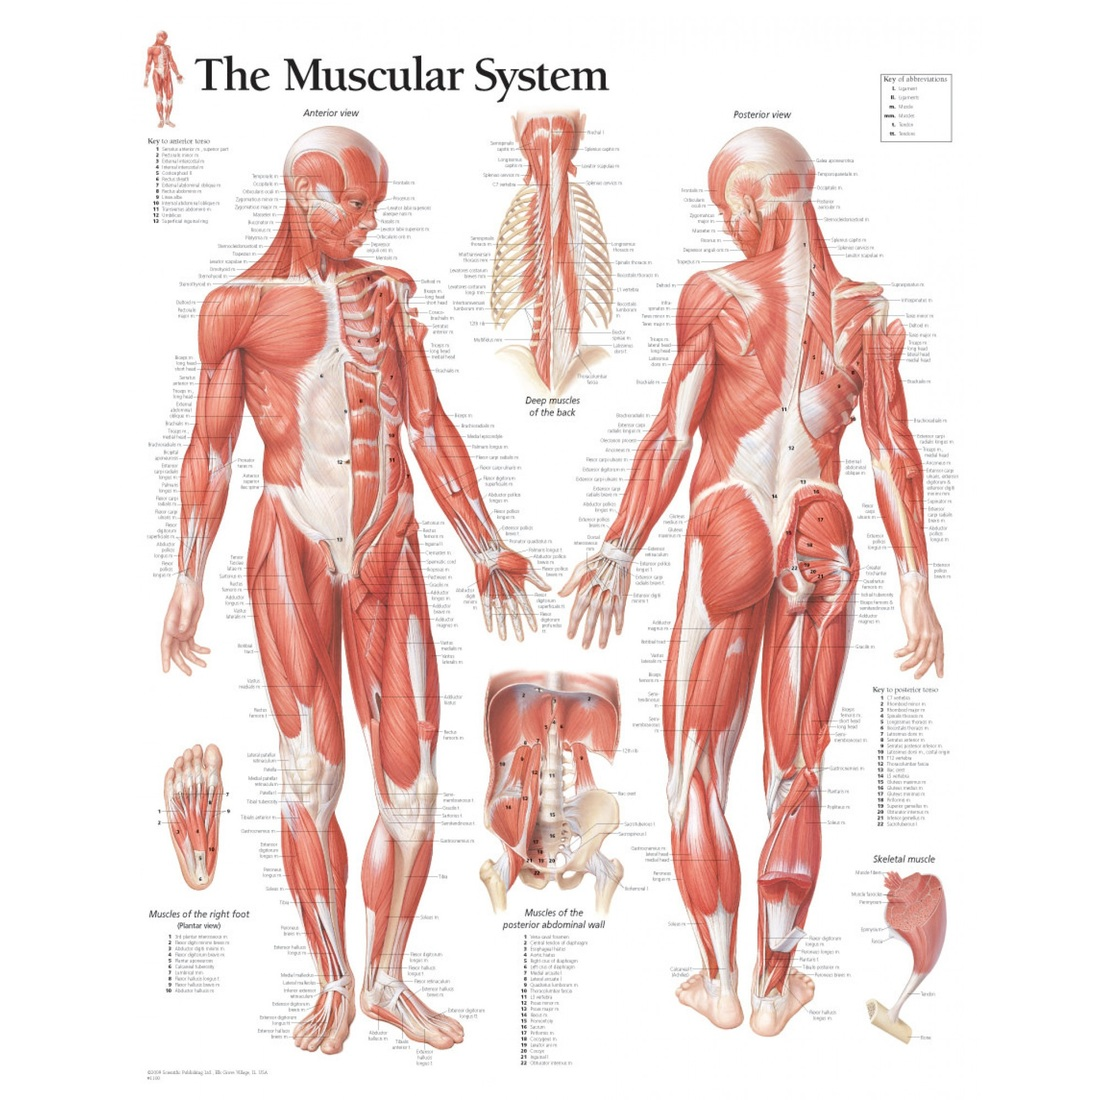 Muscles - Runyan-Grigsby\'s Science Page